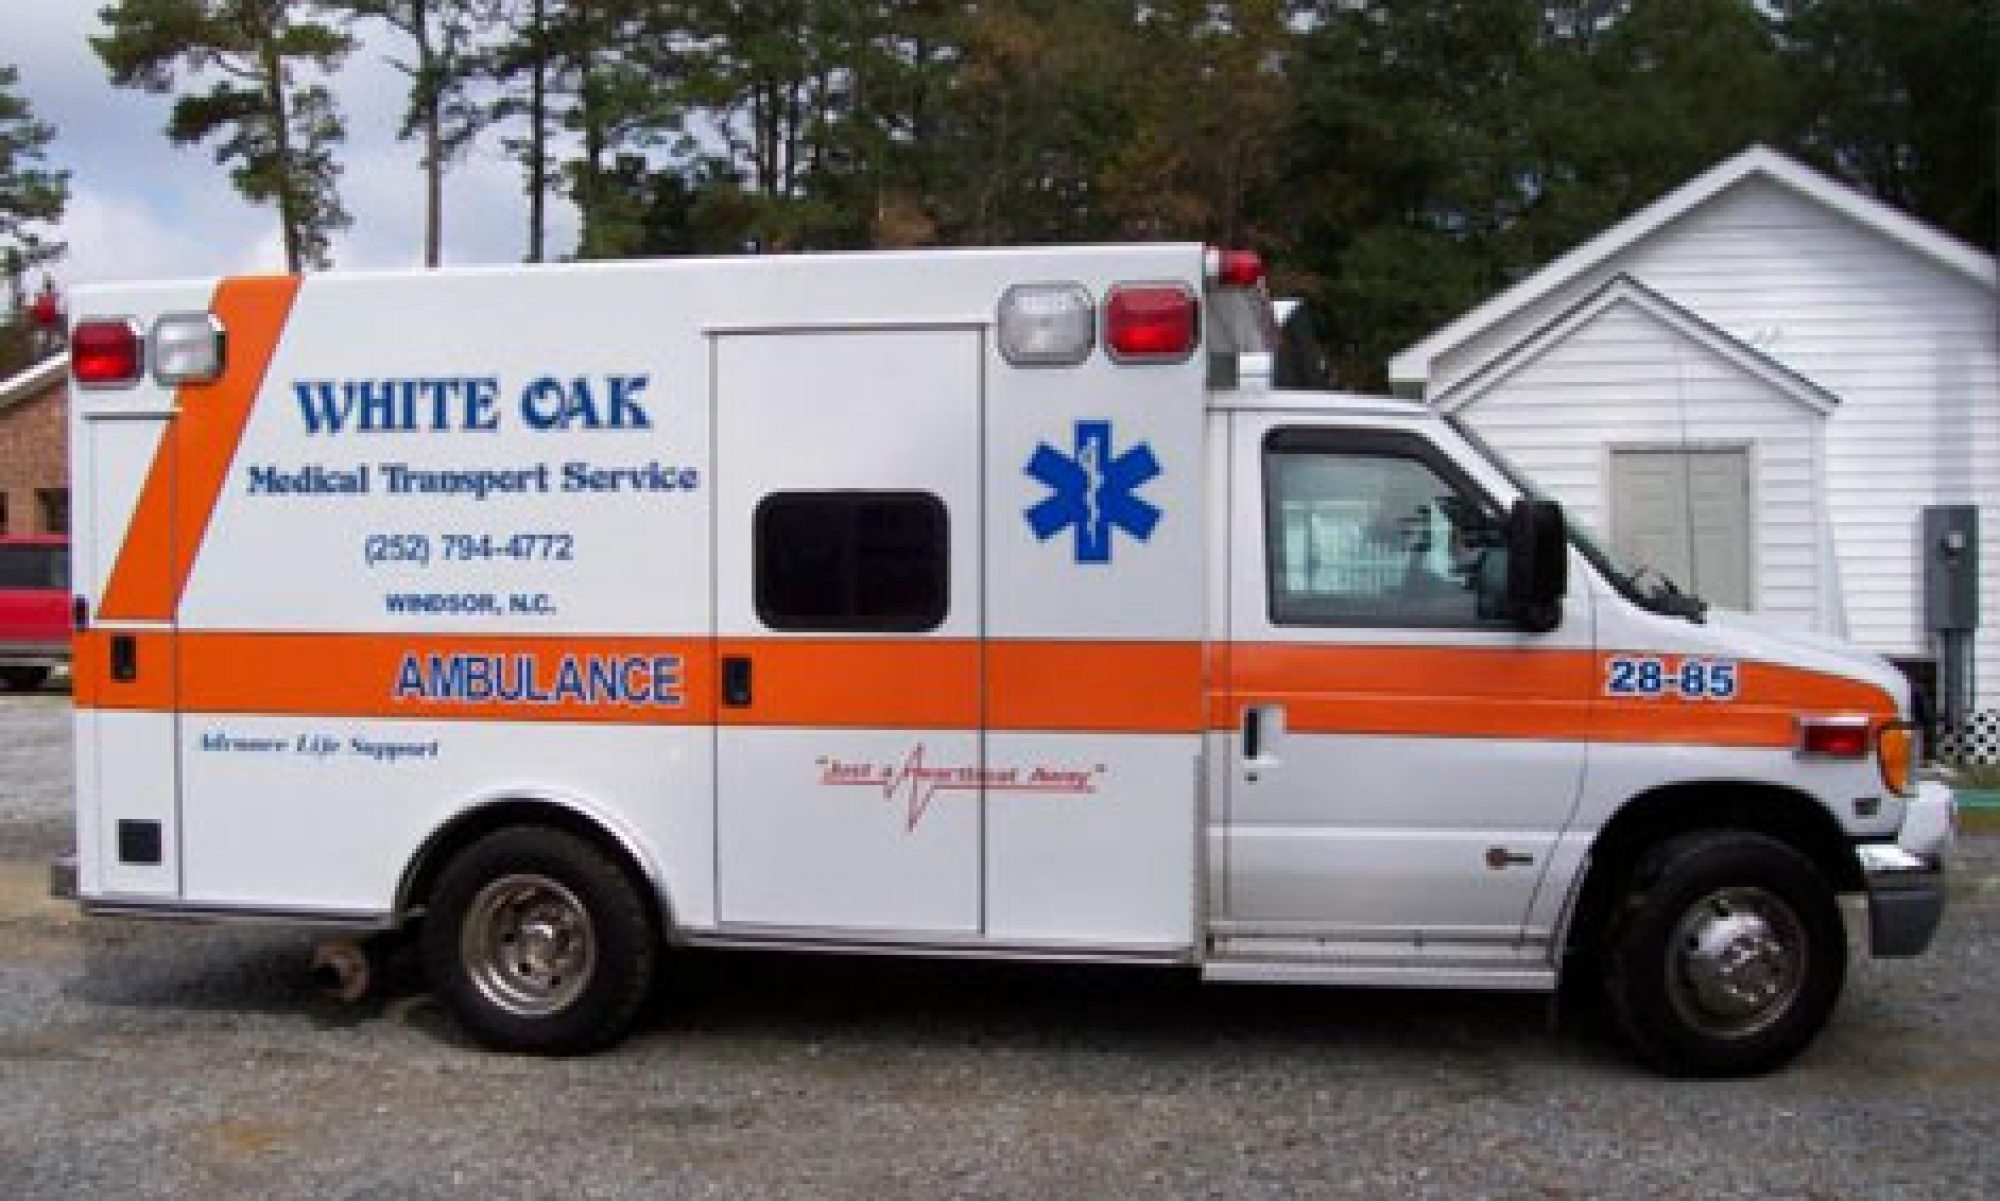 White Oak Medical Transport